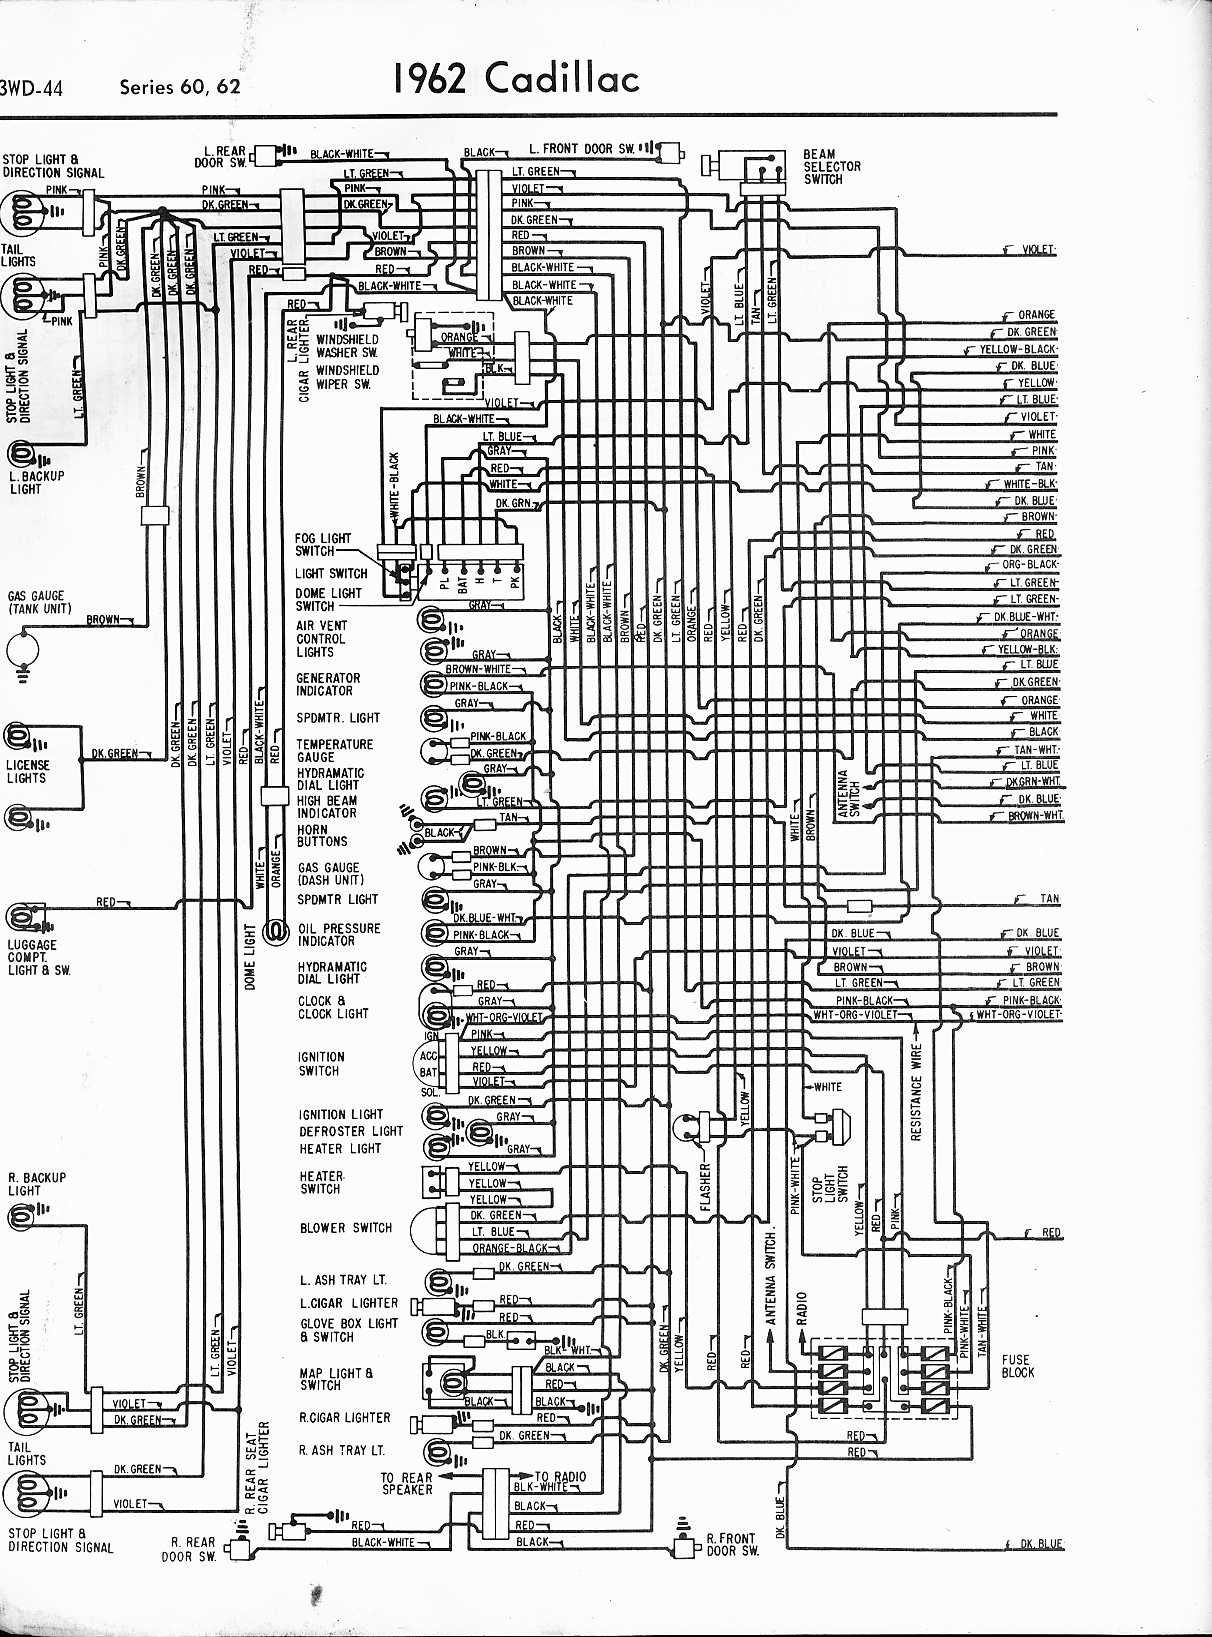 [DIAGRAM_5UK]  Cadillac Wiring Diagrams: 1957-1965 | 1966 Cadillac Wiring Diagram |  | The Old Car Manual Project